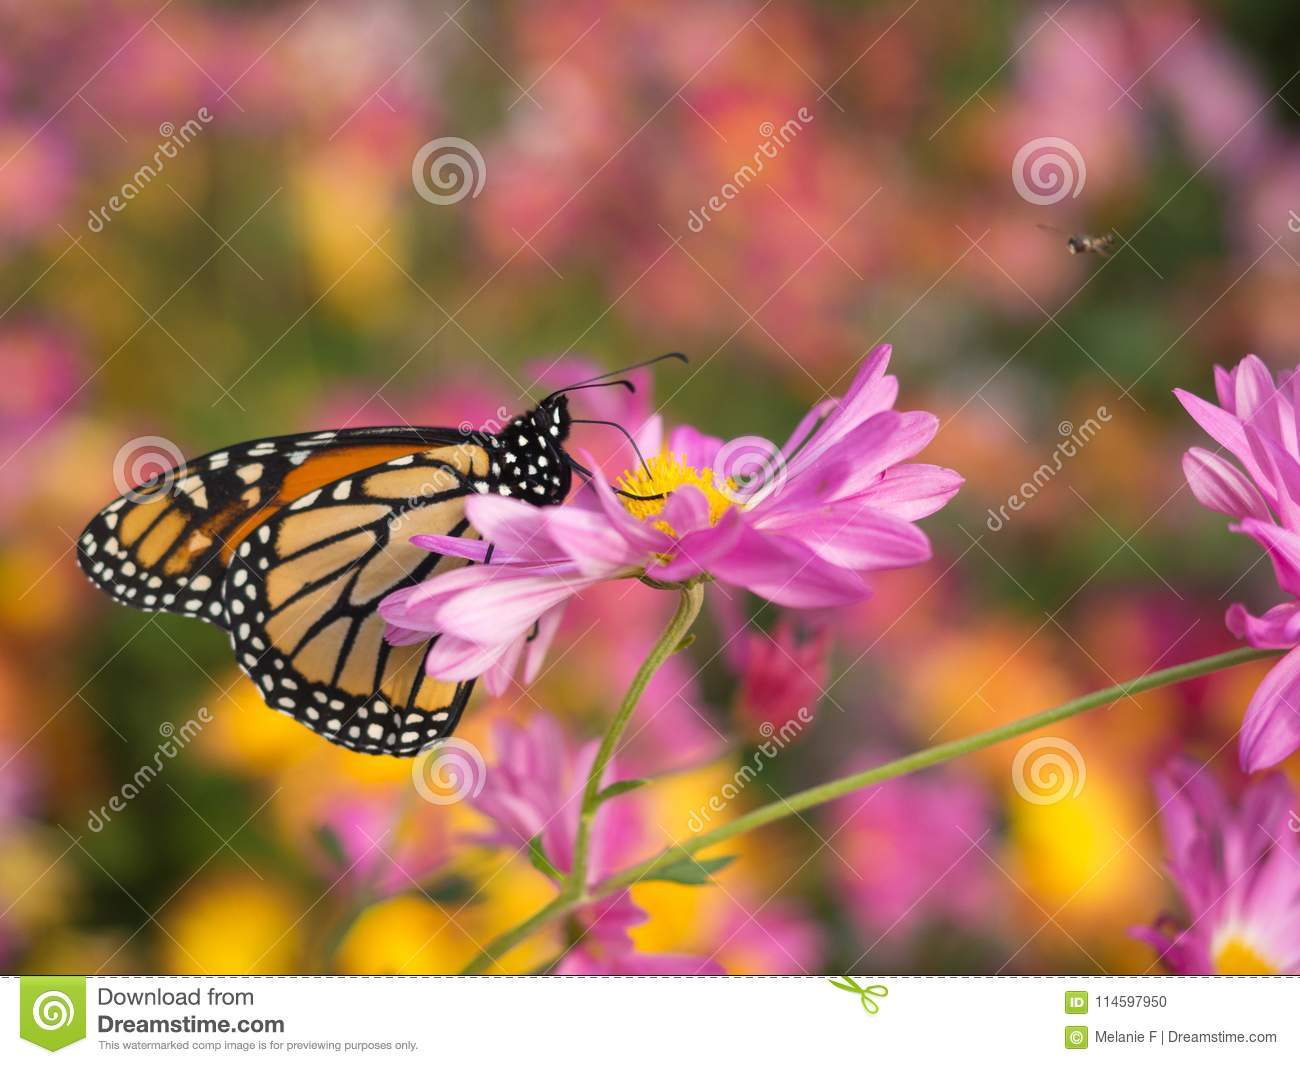 Profile of a beautiful butterfly on a pink chrysanthemum flower download profile of a beautiful butterfly on a pink chrysanthemum flower stock photo image of izmirmasajfo